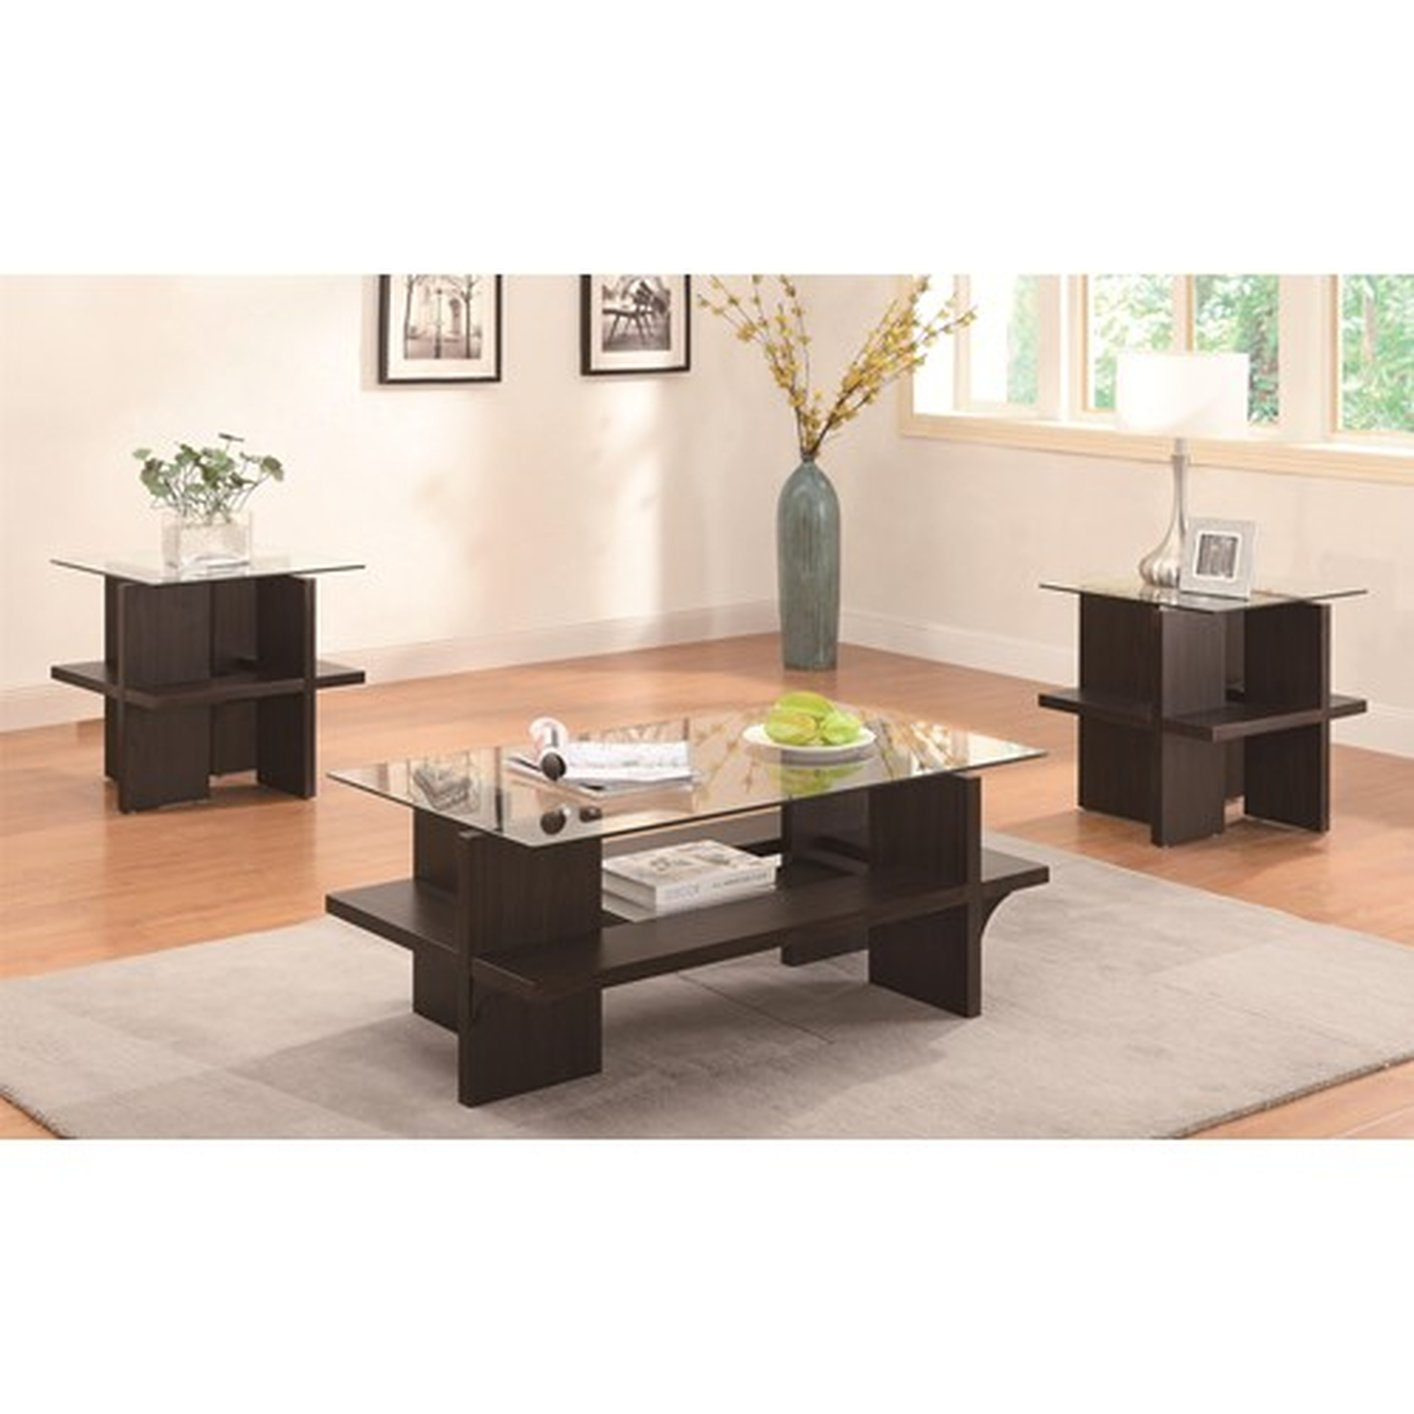 Enright Brown Glass Coffee Table Set  sc 1 st  Steal-A-Sofa Furniture Outlet & Enright Brown Glass Coffee Table Set - Steal-A-Sofa Furniture Outlet ...